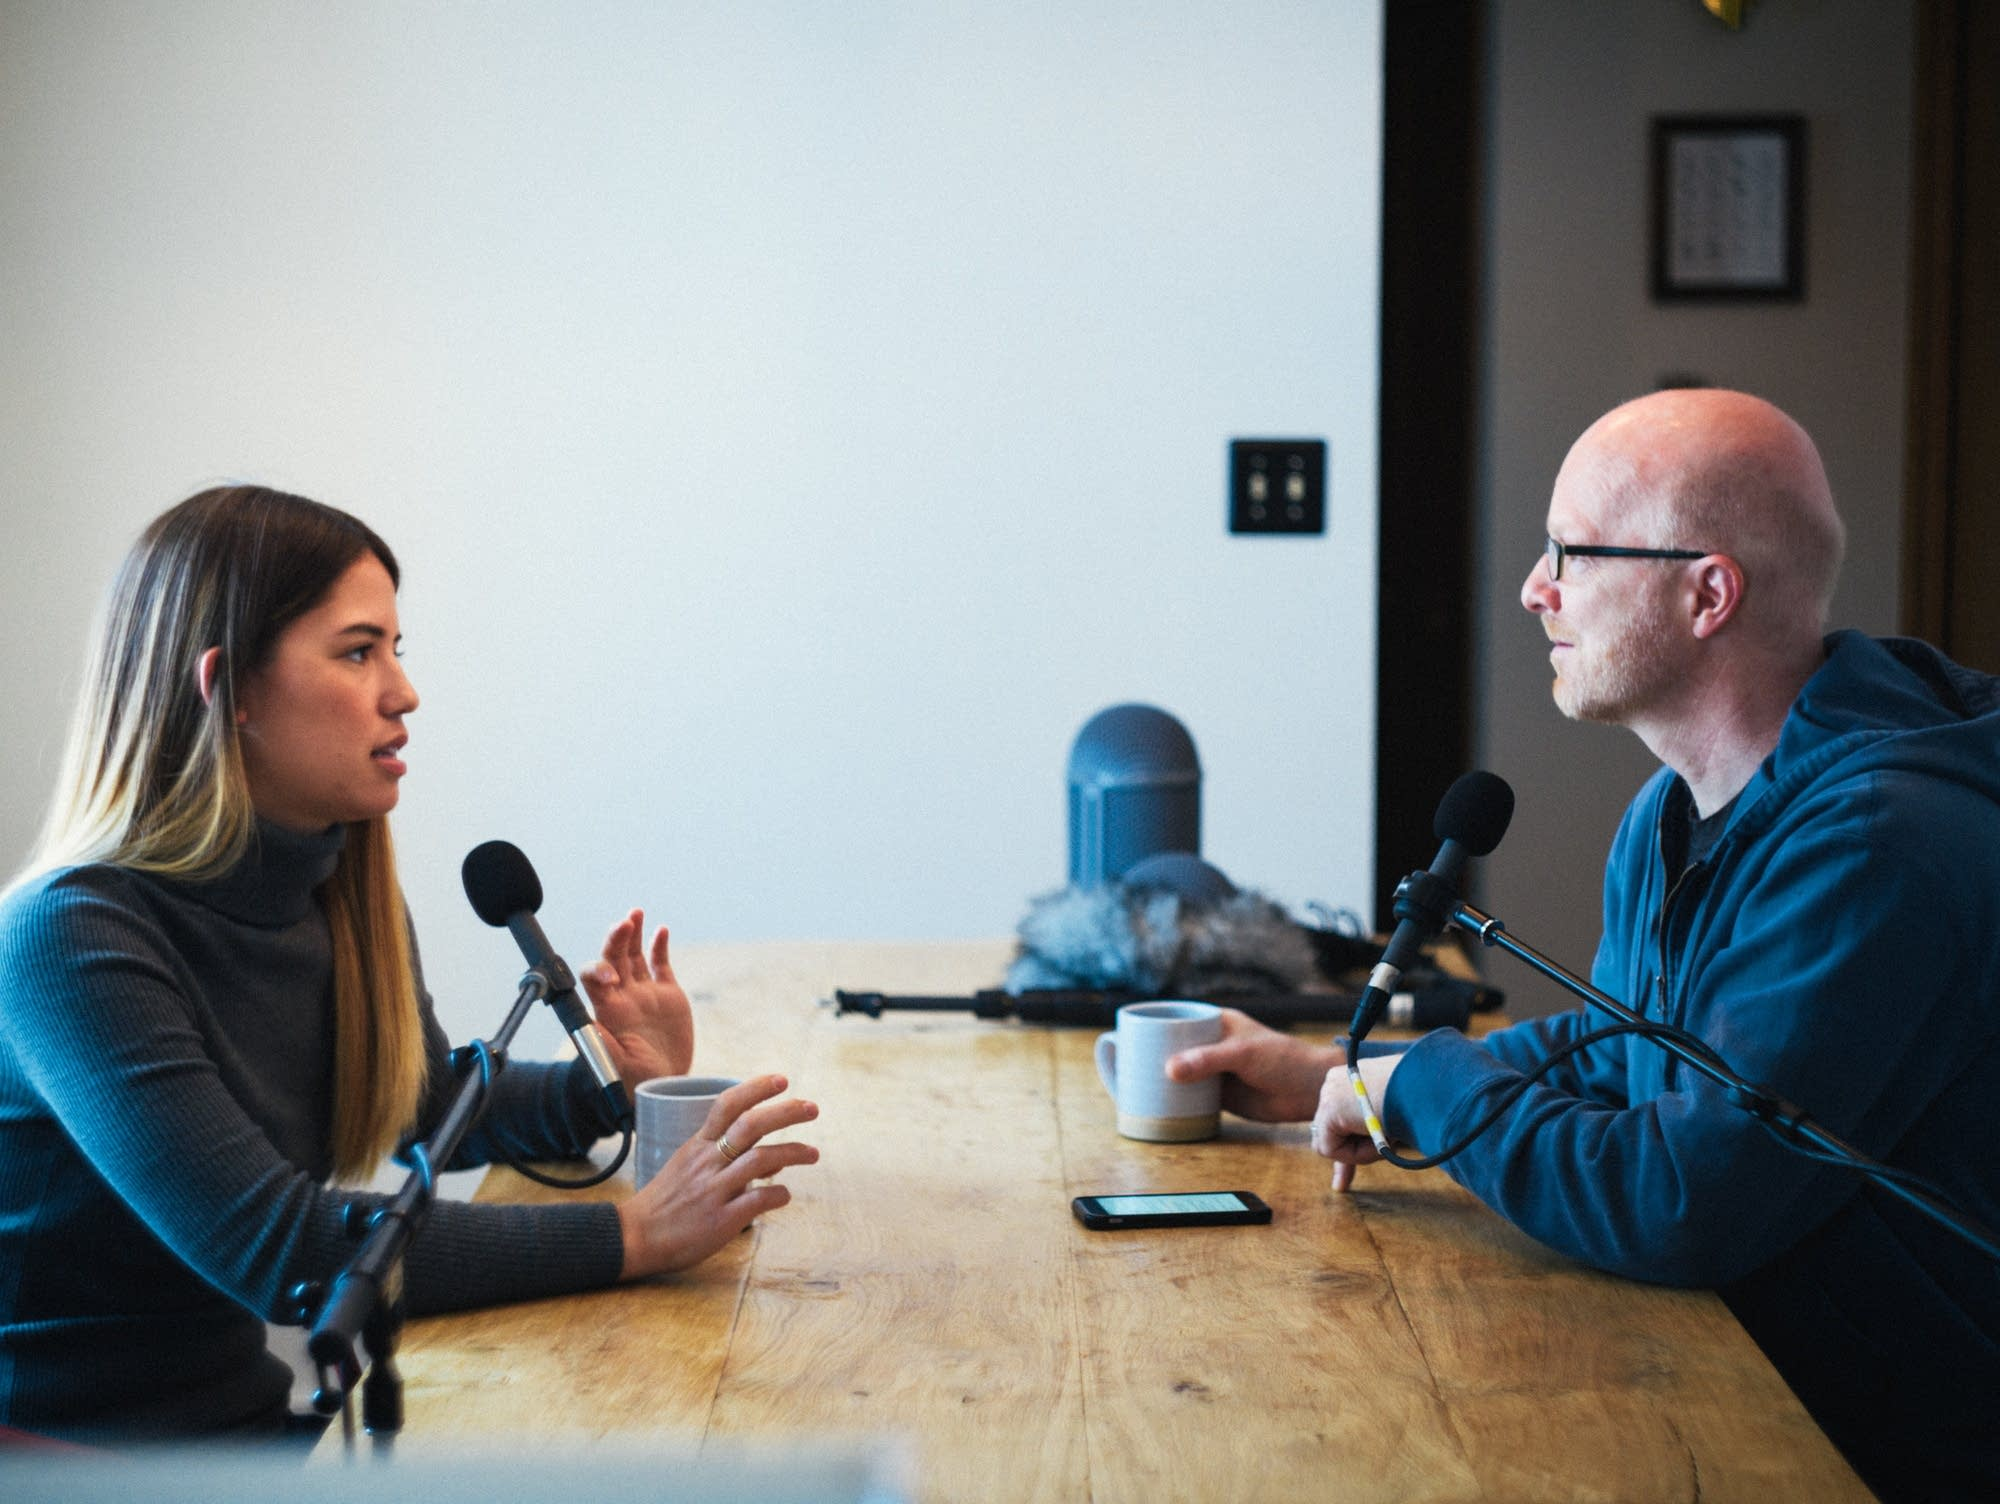 Fred Child interviews Molly Yeh in her dining room